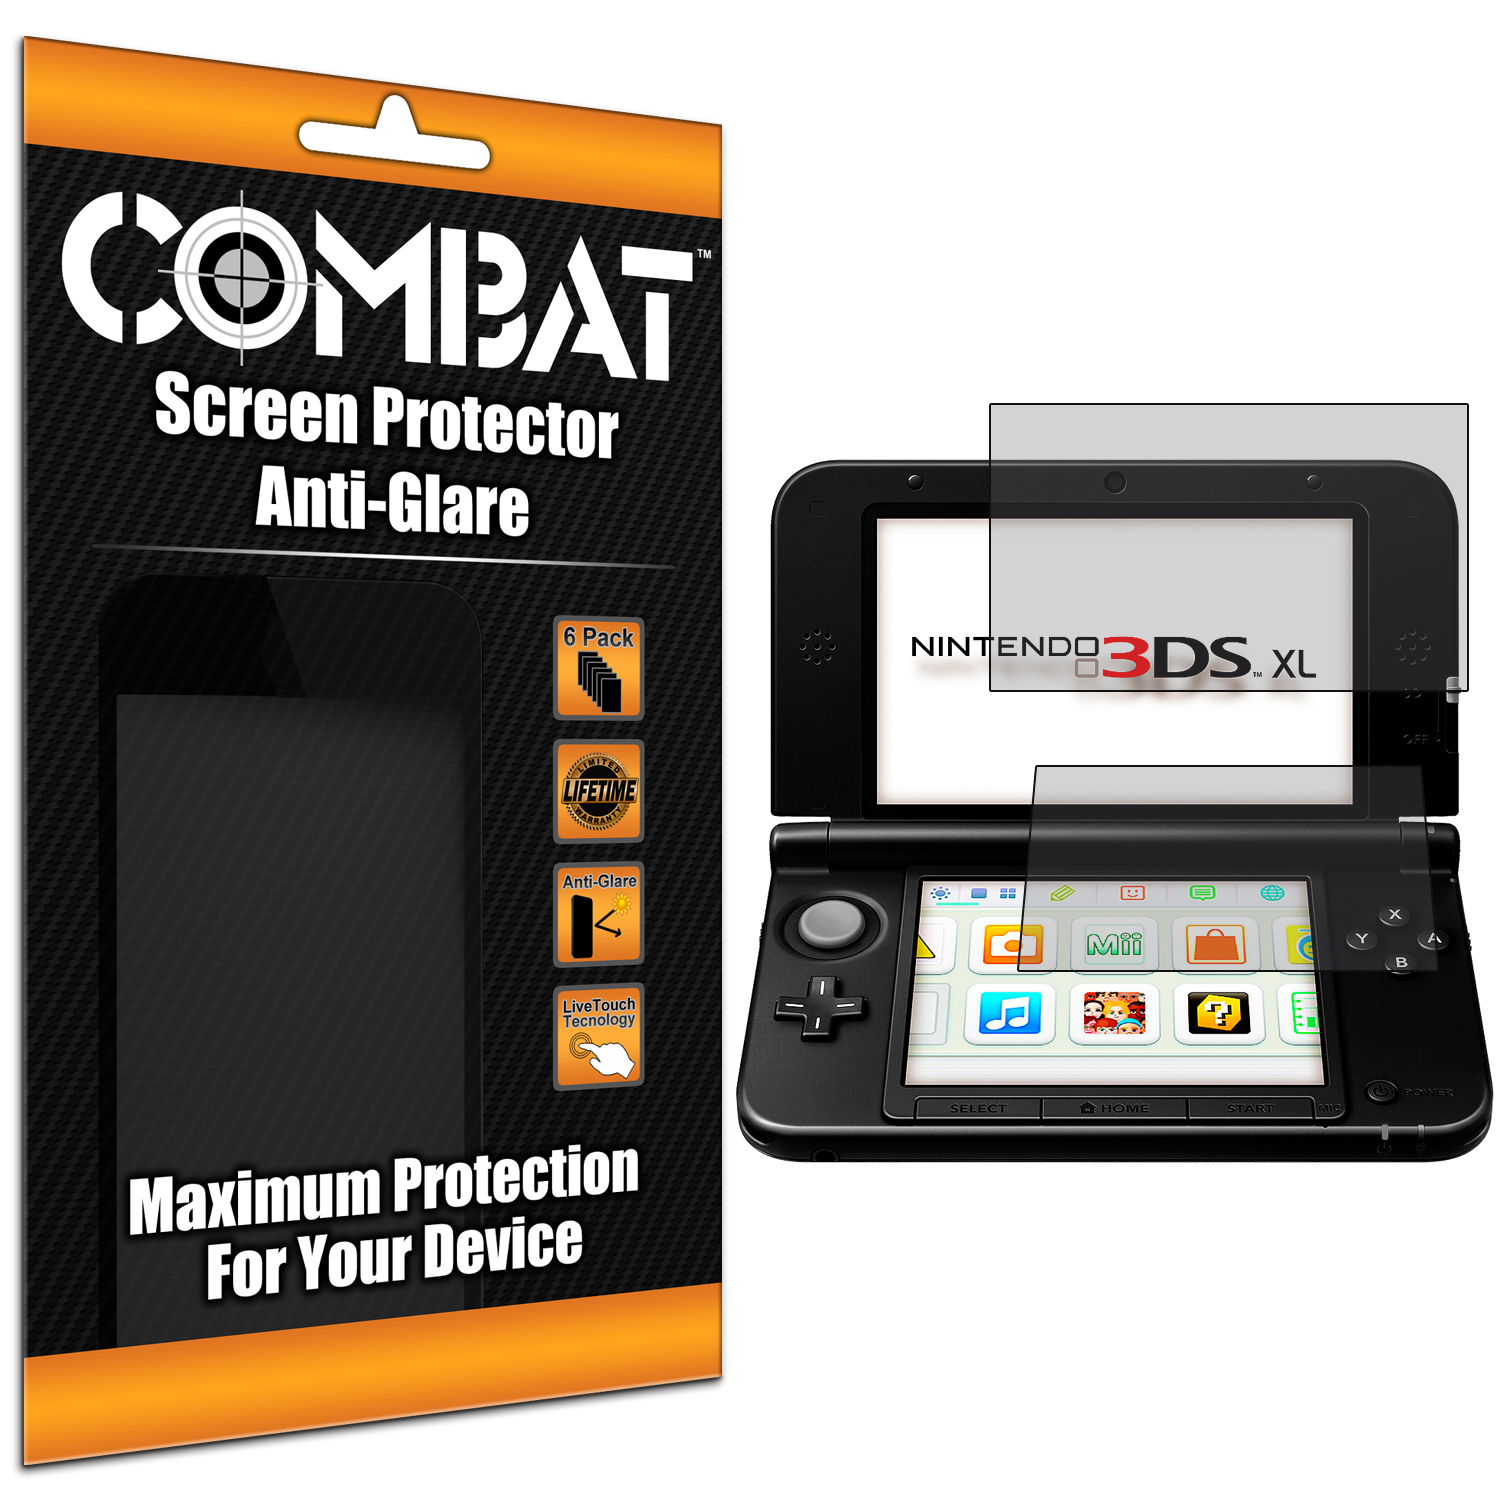 Nintendo 3DS XL Combat 6 Pack Anti-Glare Matte Screen Protector